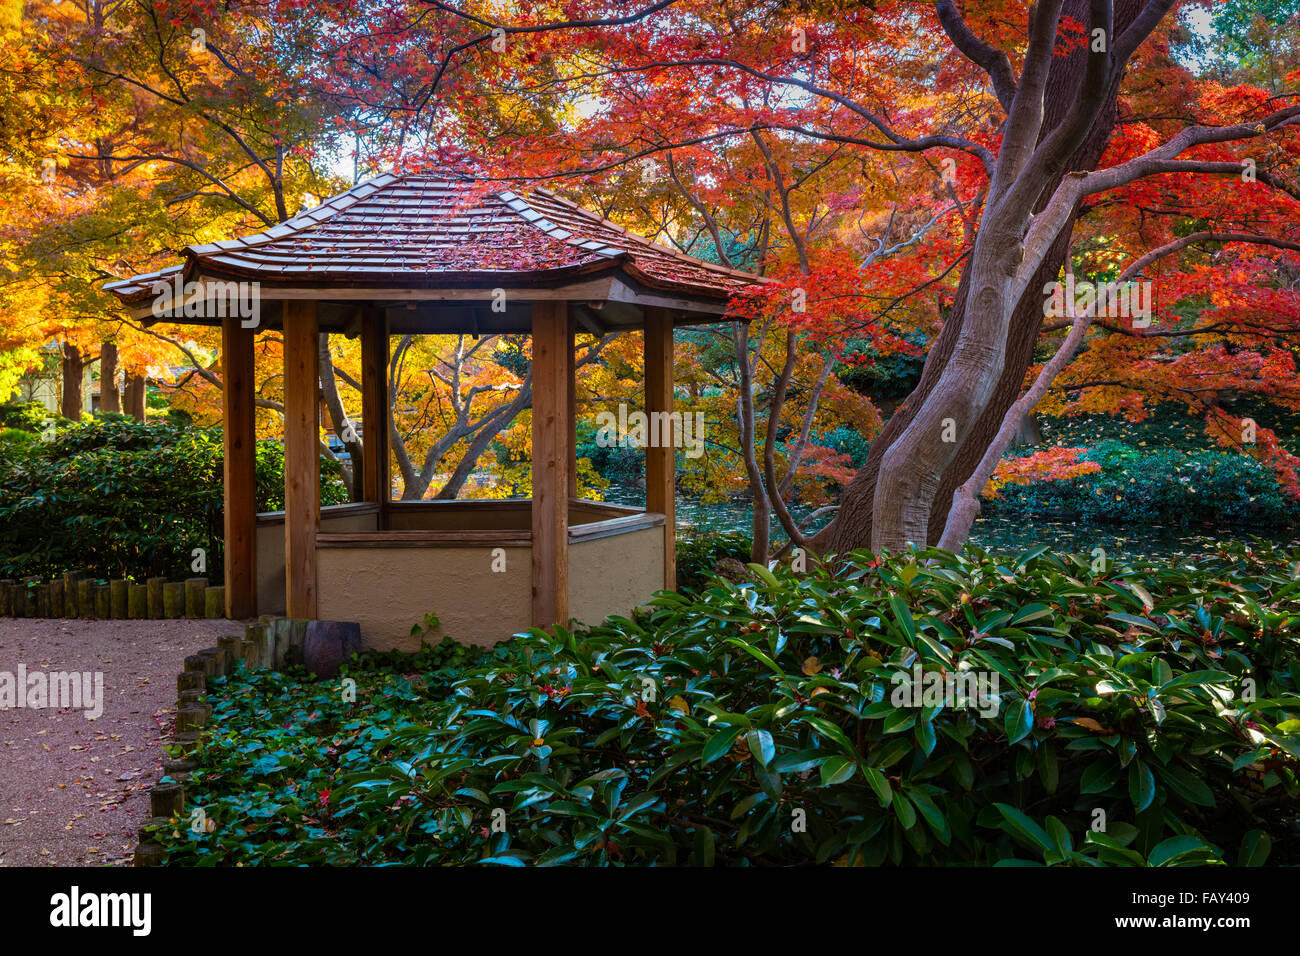 Japanese Garden Fort Worth Texas Stock Photos & Japanese Garden Fort ...